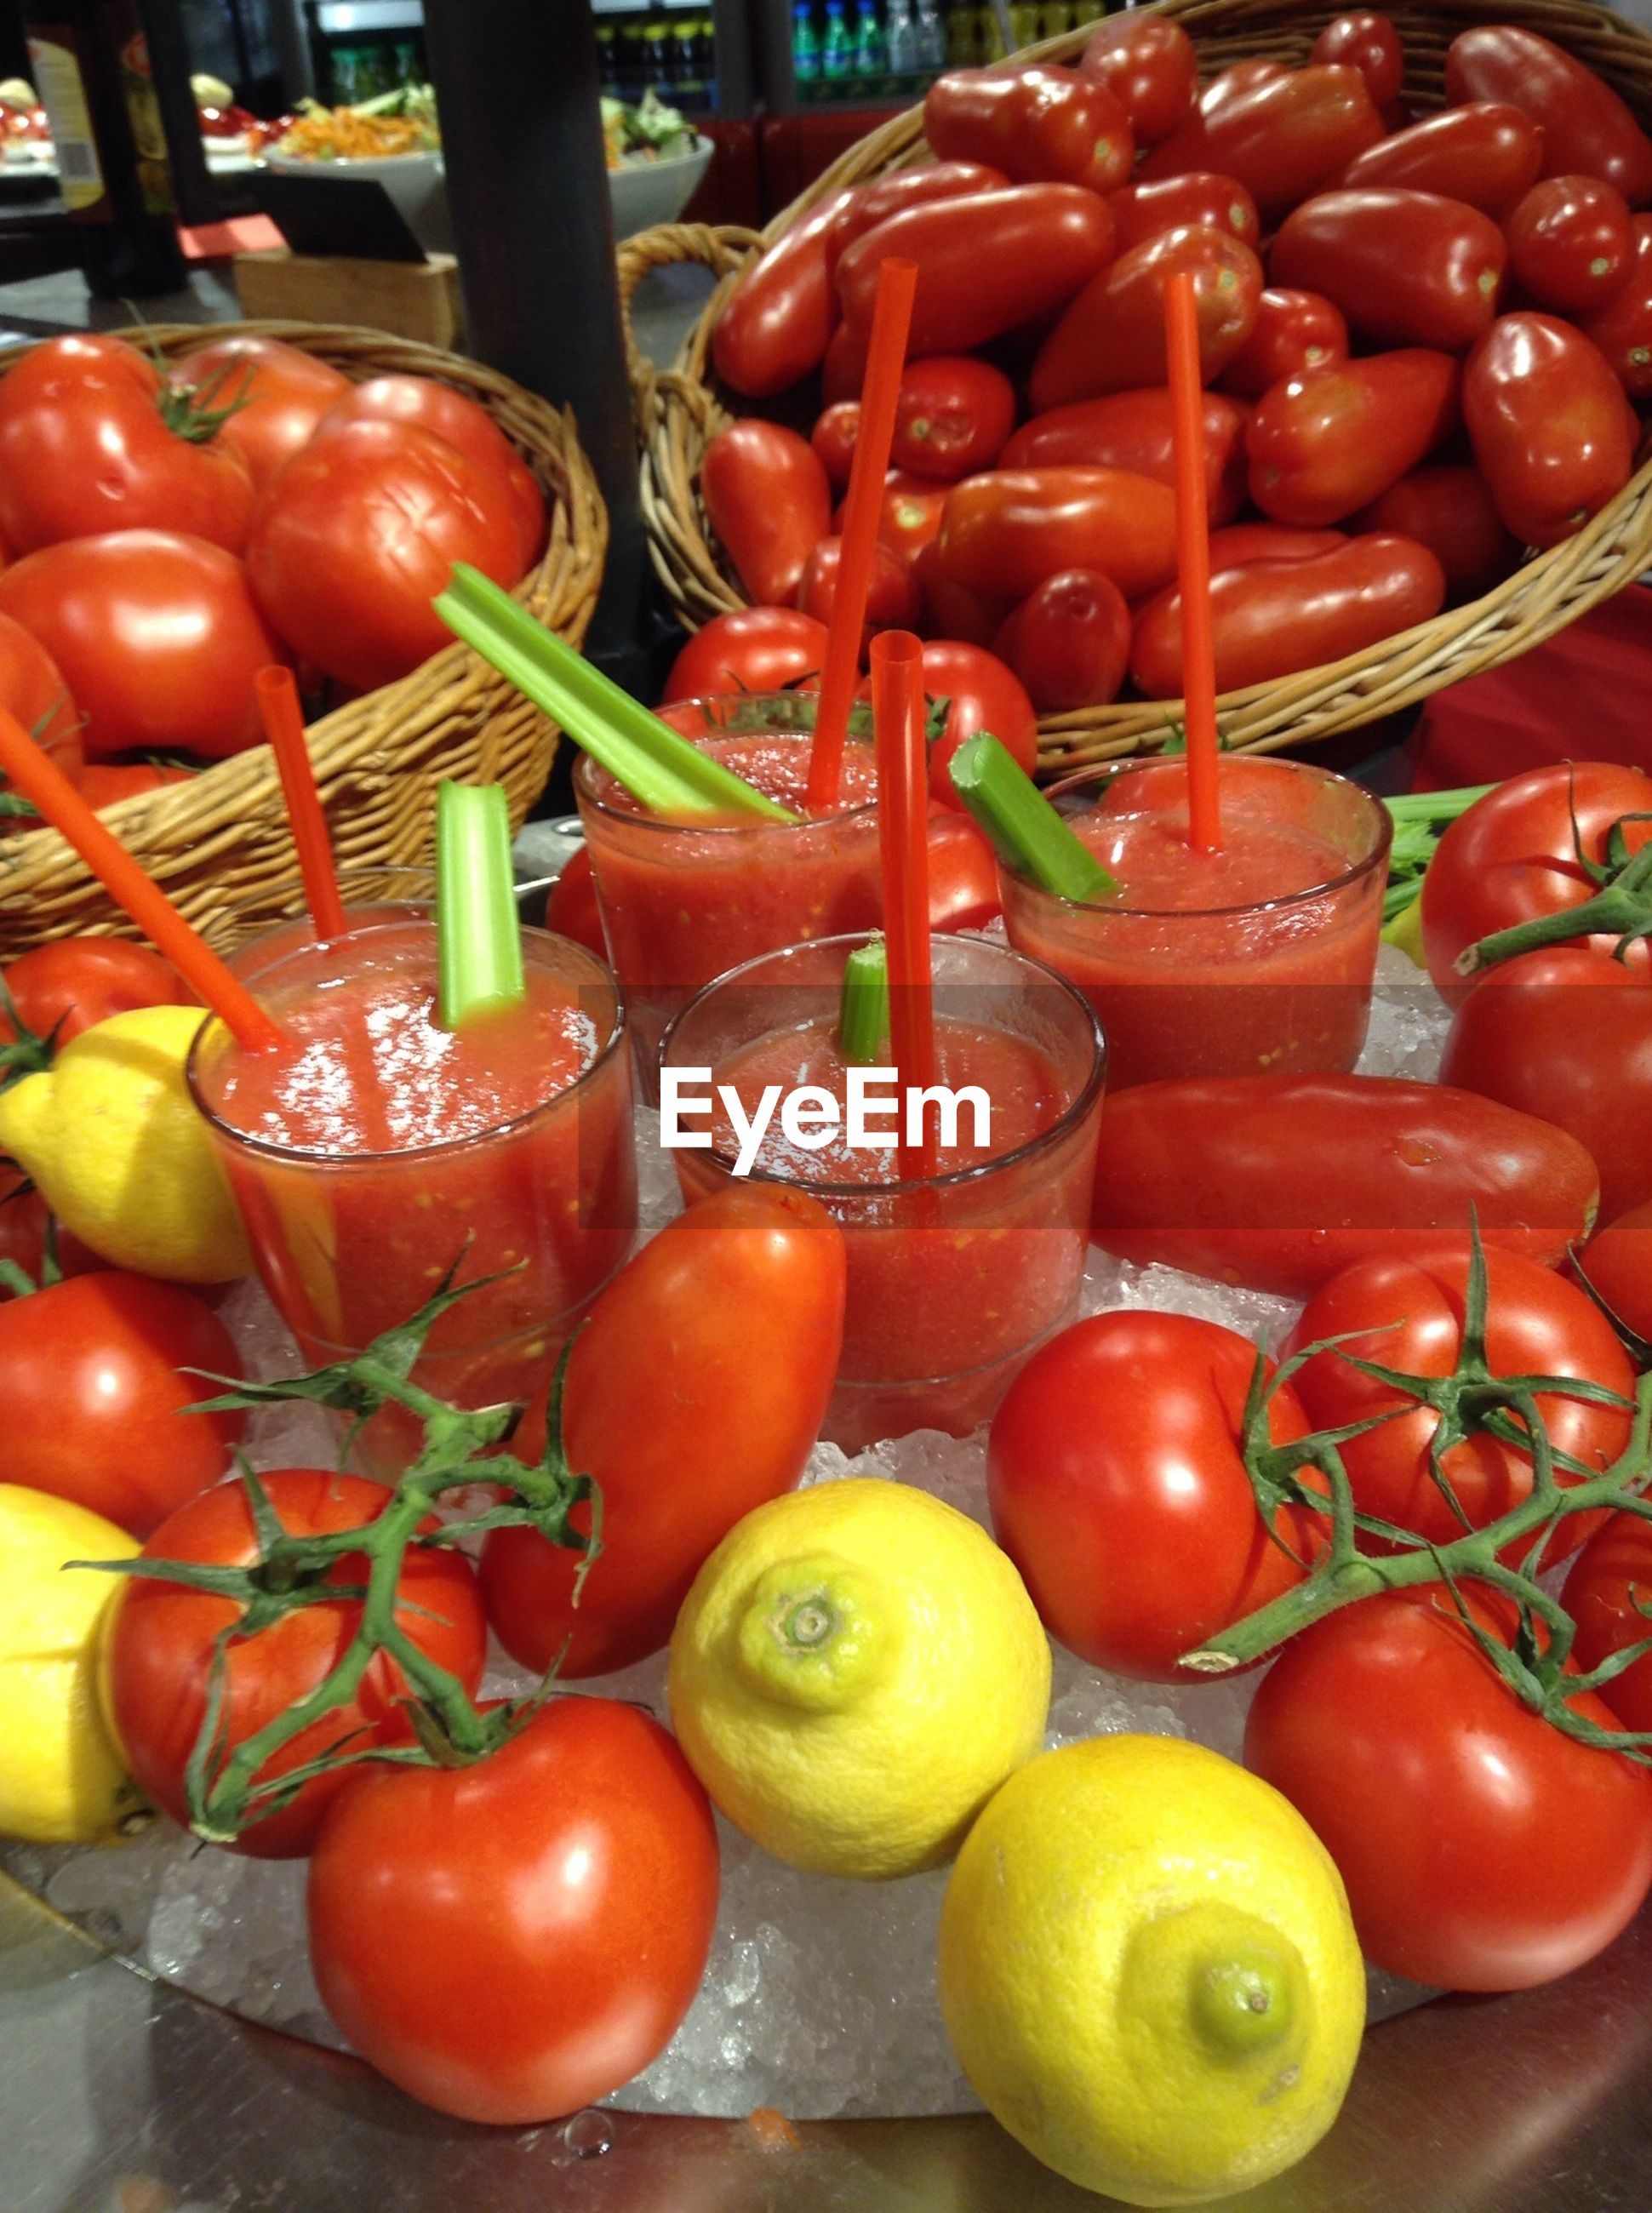 FULL FRAME SHOT OF TOMATOES IN MARKET